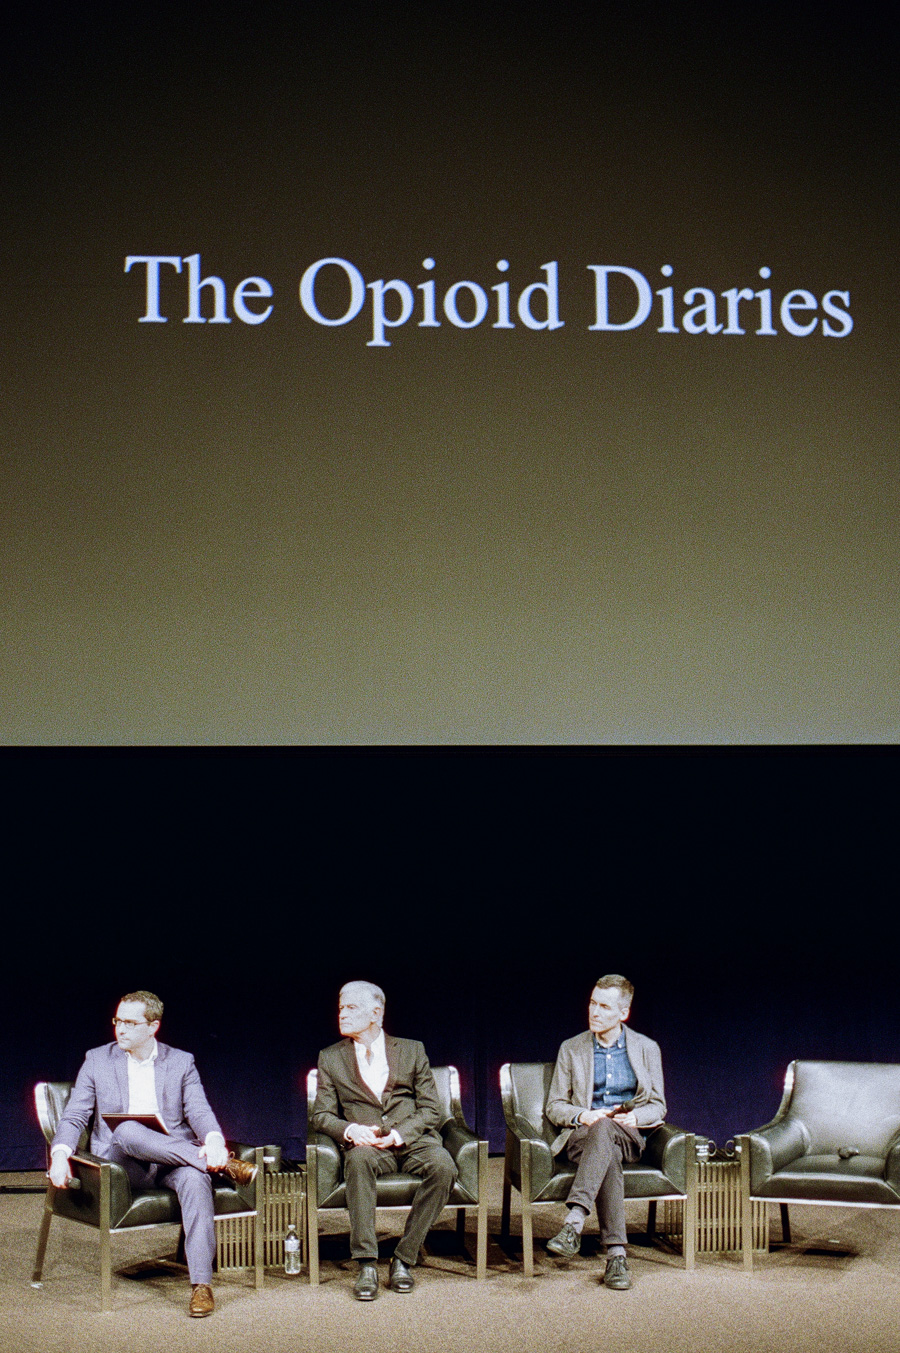 The Opioid Diaries: James Nachtwey's Talk at Newseum in Nation's Capital